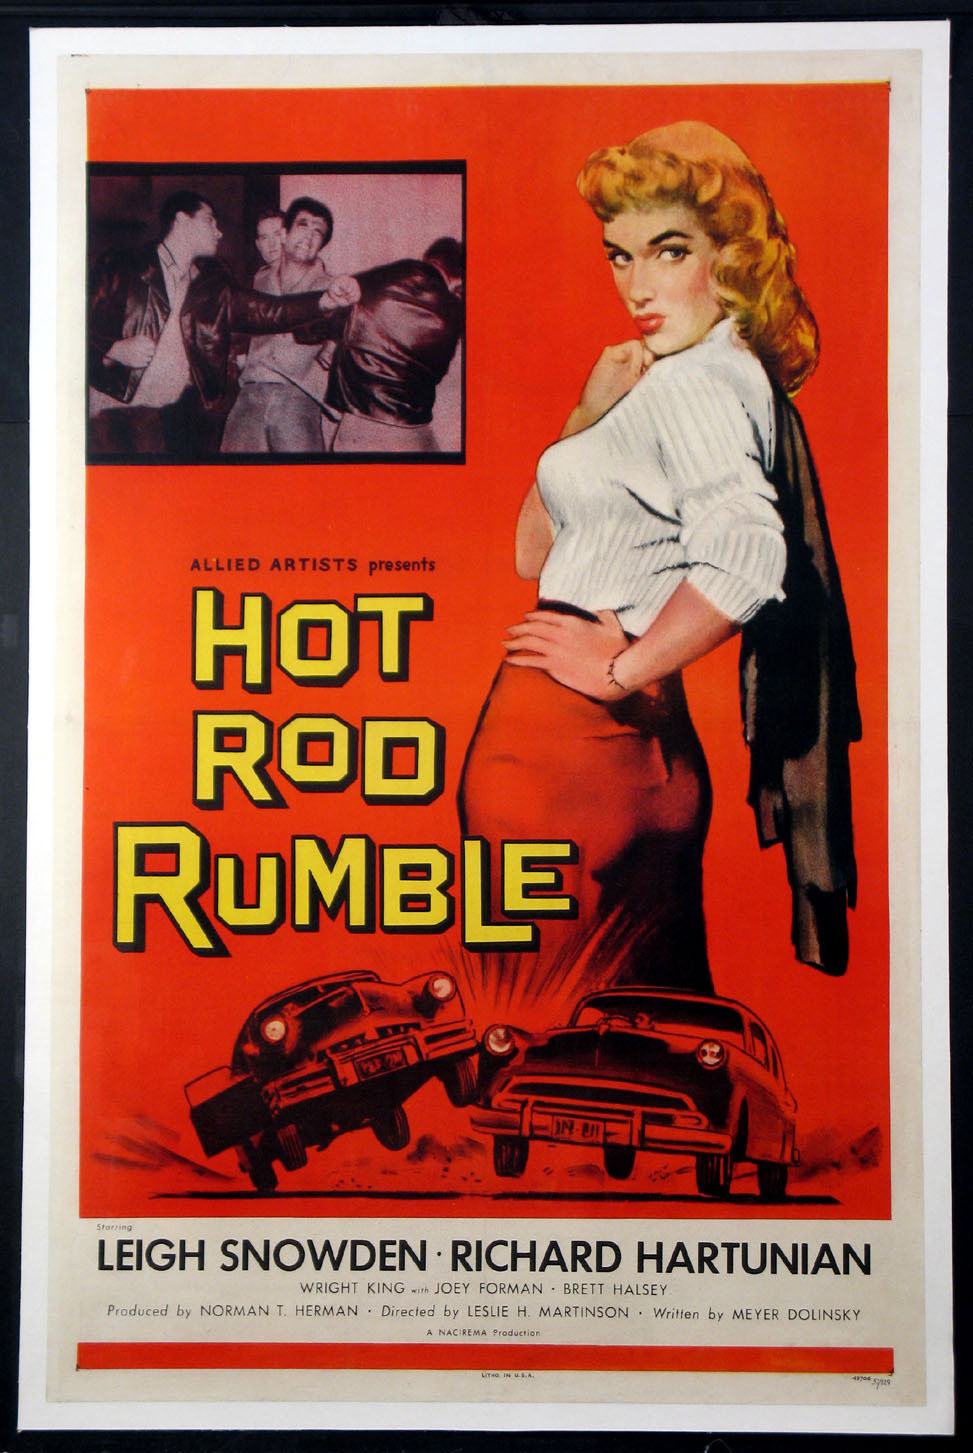 HOT ROD RUMBLE @ FilmPosters.com